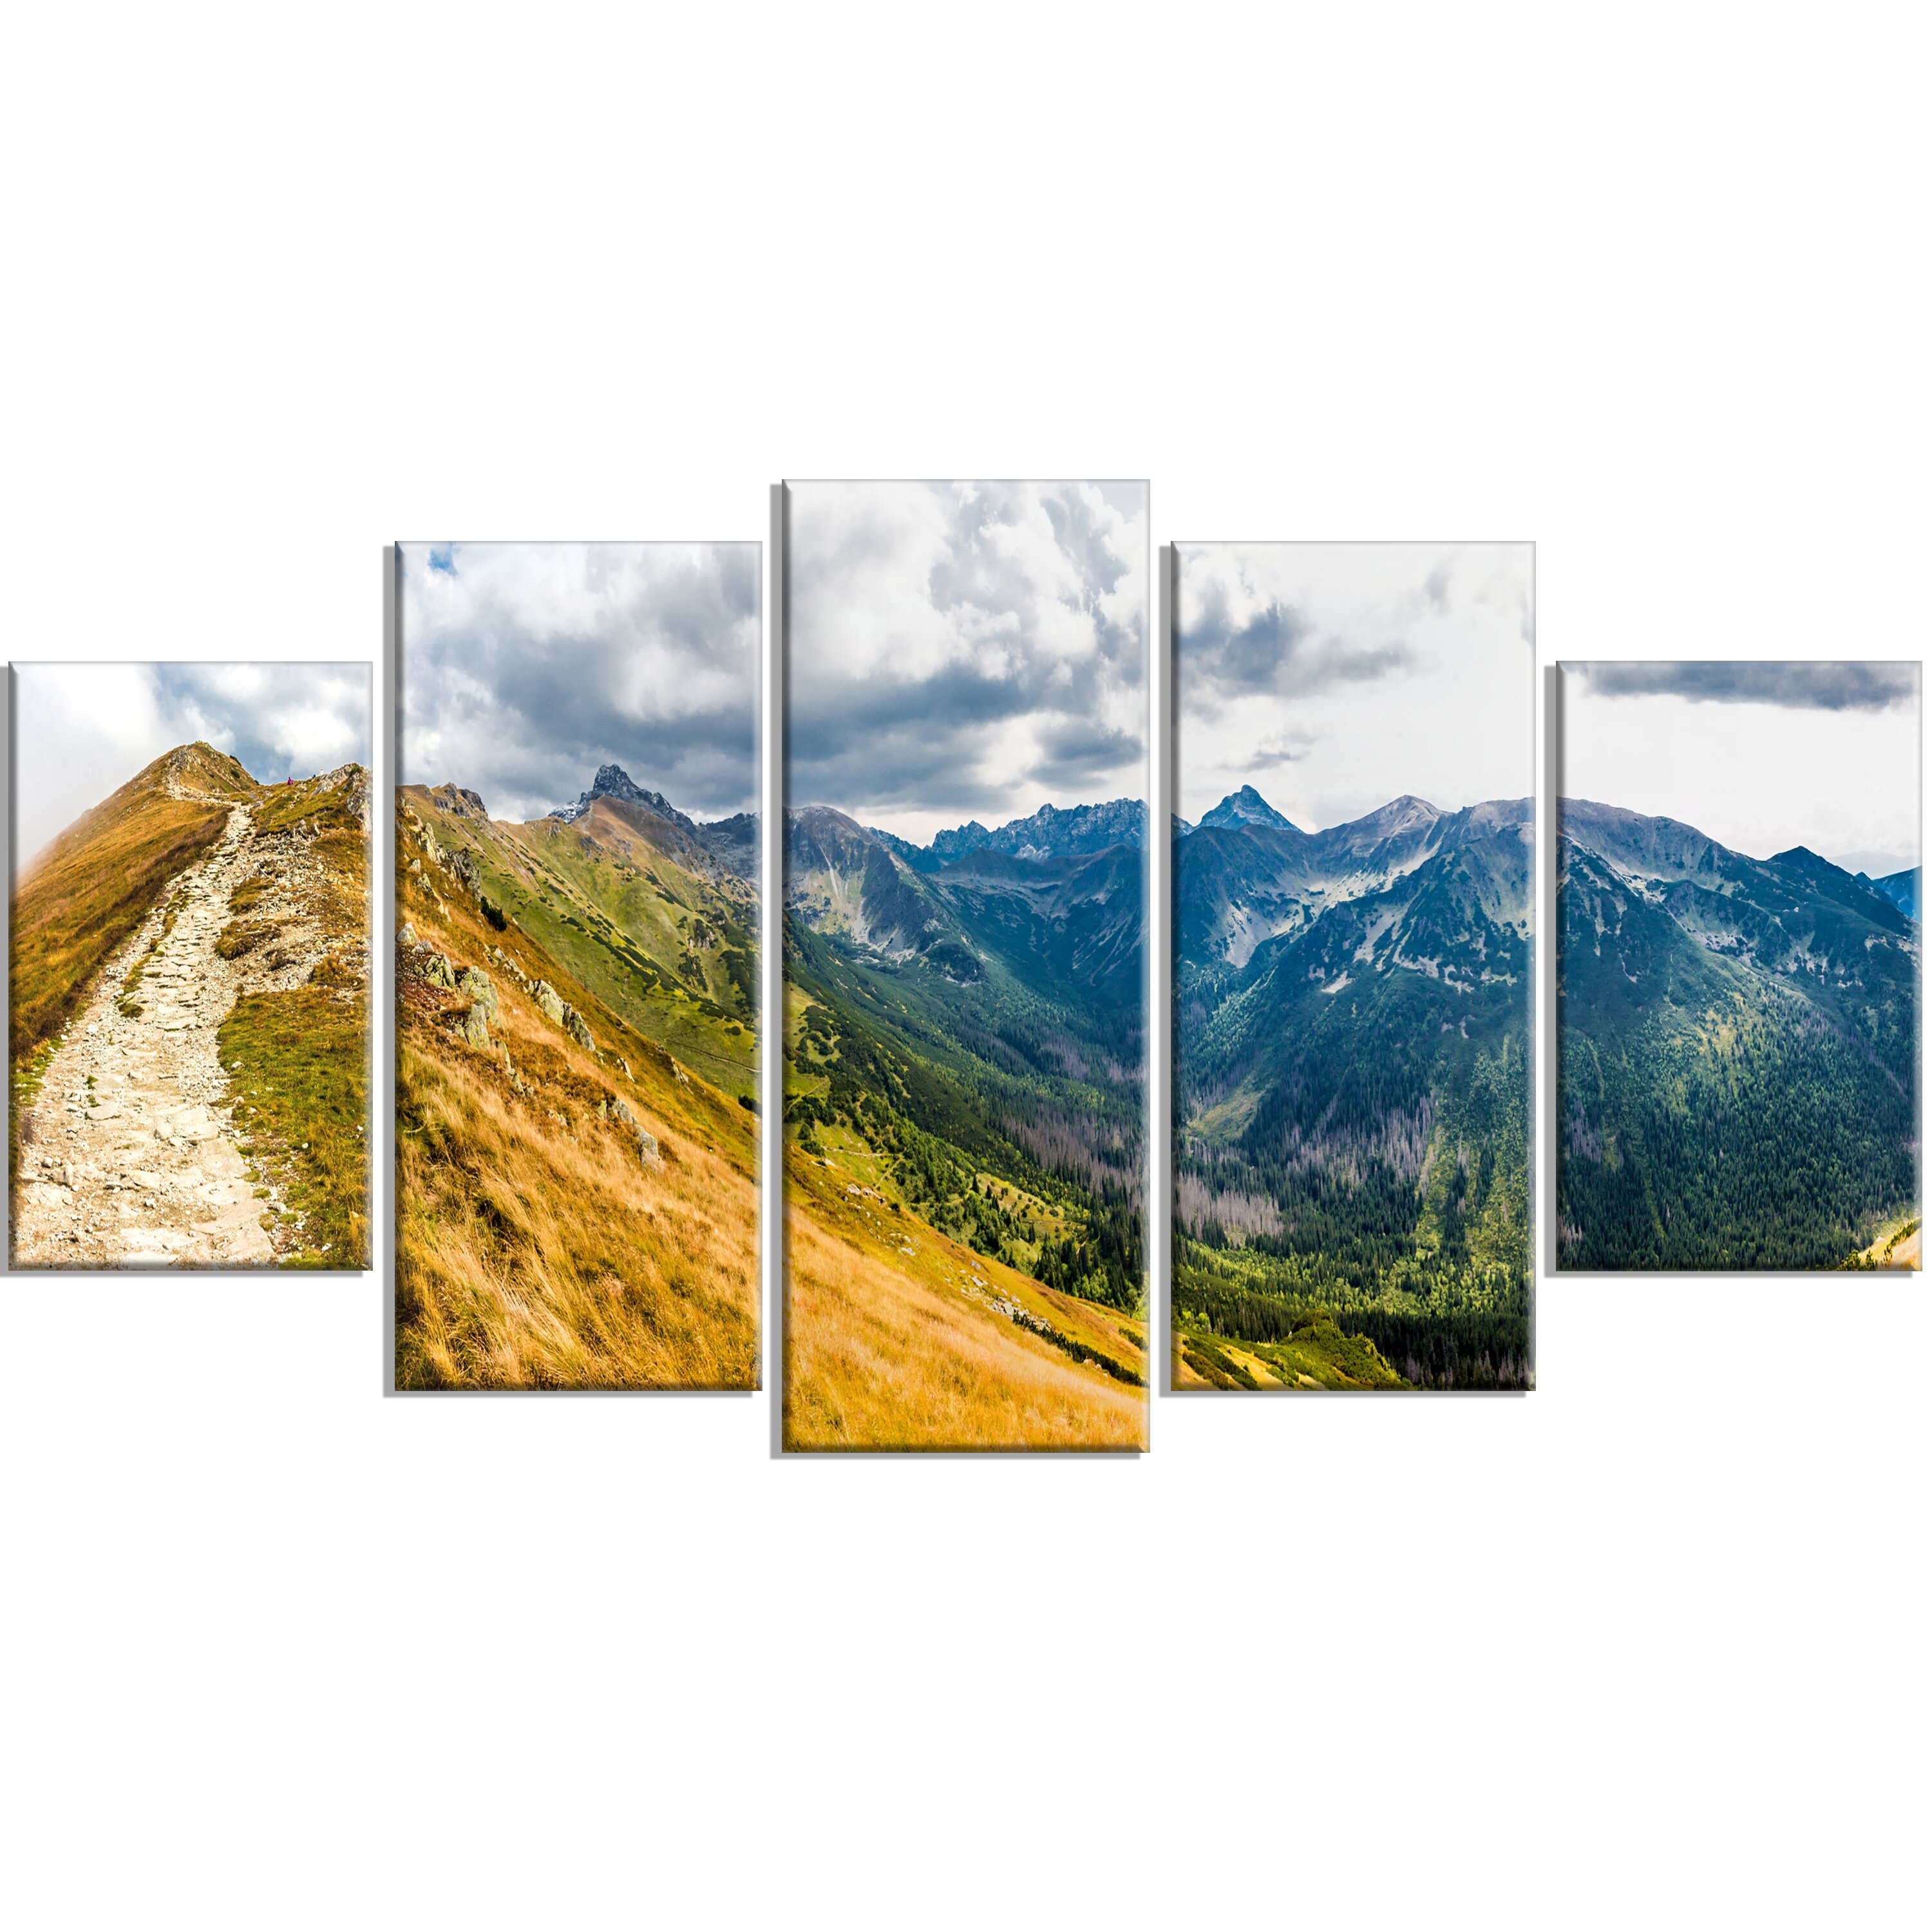 designart 39 low tatras hike panorama 39 5 piece wall art on wrapped canvas set wayfair. Black Bedroom Furniture Sets. Home Design Ideas